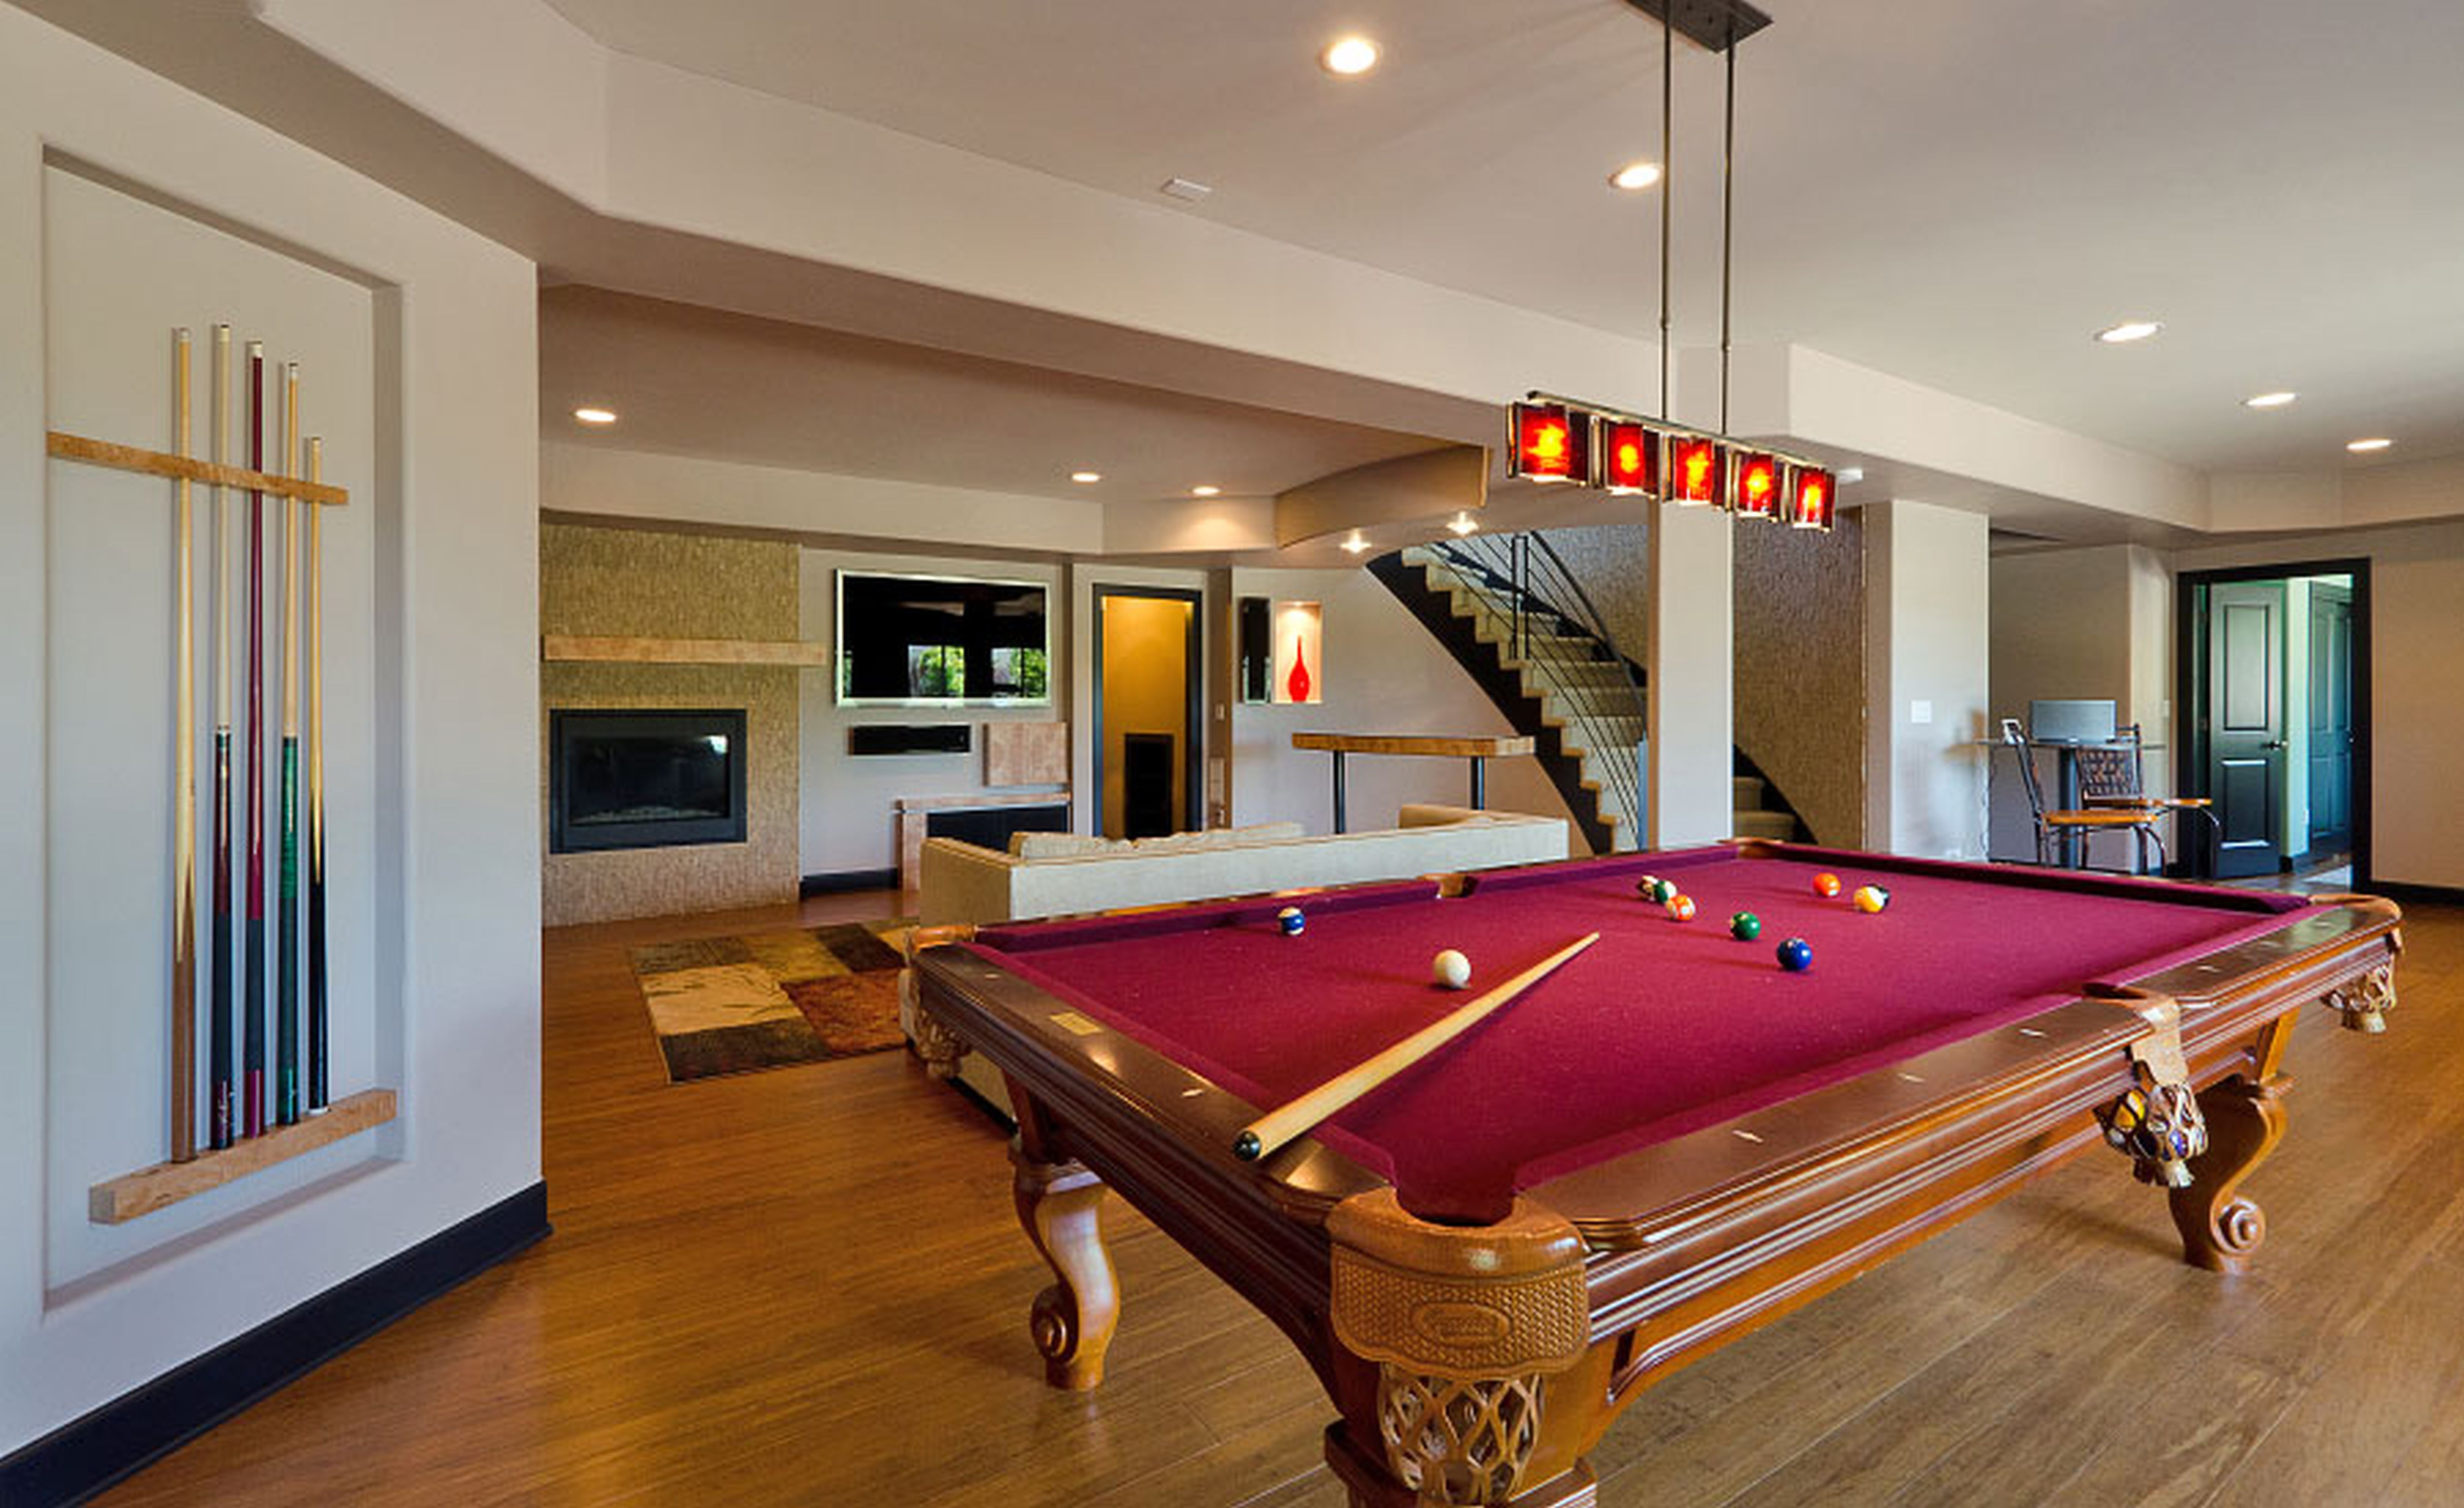 Alluring Finished Basement Idea With Gorgeous Pool Table